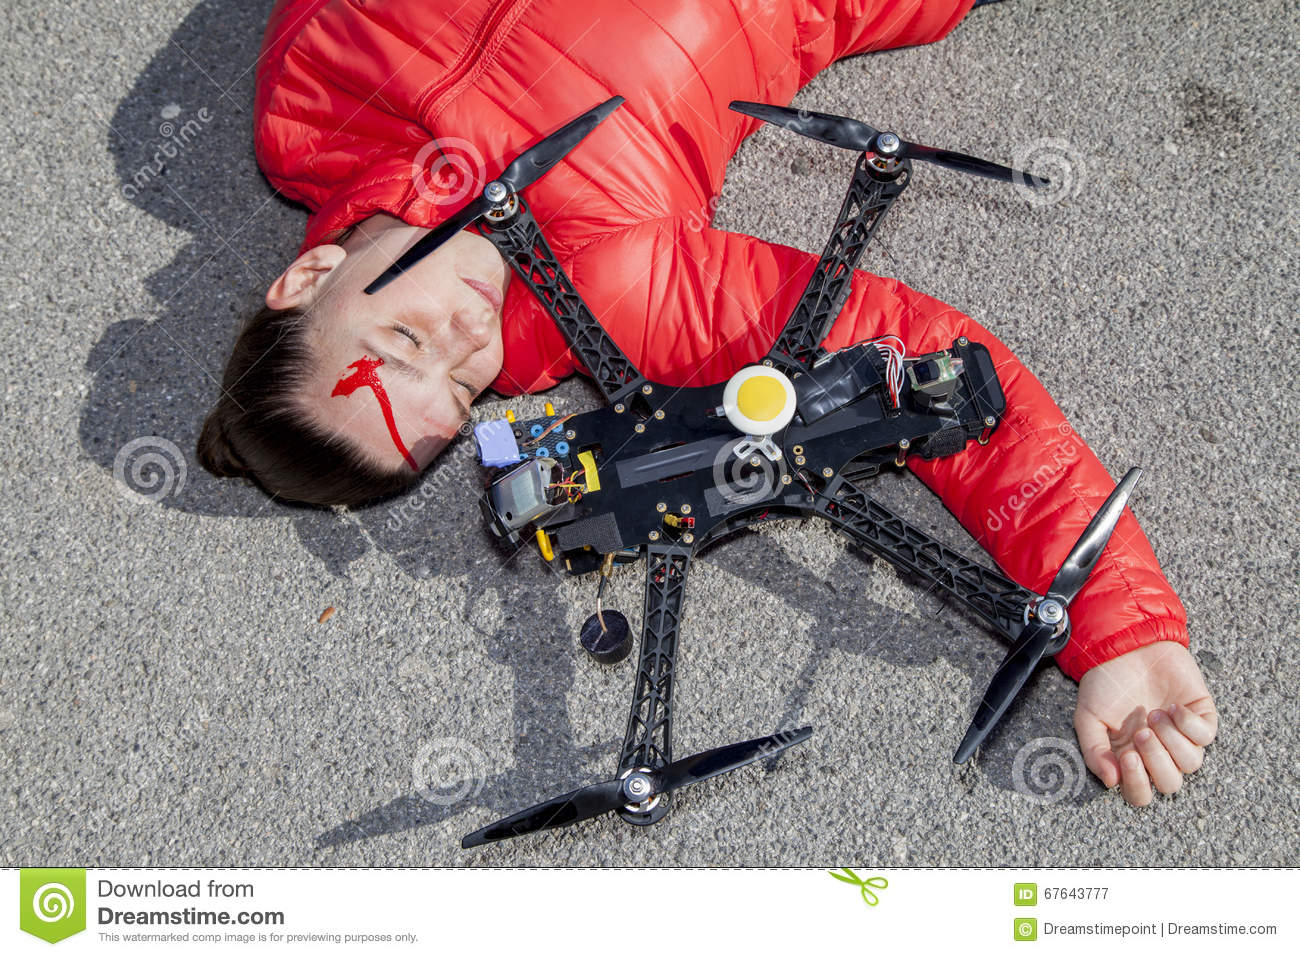 remote control copter with camera with Stock Photo Drone Quadcopter Accident Scene City Pretty Woman Attacked Quadrocopter Bleeding Head Injuries Lying Sidewalk Image67643777 on Stock Illustration Set Icons Quadrocopter Hexacopter Multicopter Drone Isolated White Image44355309 likewise X5c Wifi Rc Drone With Fpv Camera 2 0mp 720p Hd Remote Control Quadcopter Professional Drones Toy Helicopter X5c Wifi Version moreover Remote Control Helicopter With Video Camera further Stock Illustration Quadcopter Drone K Video Camera Flying Air Creative Abstract D Render Illustration Professional Remote Controlled Image84582320 besides 2 Axis Flir Vue Pro R Thermal Camera Stabilized Gimbal For Dji Phantom 4 Standard.